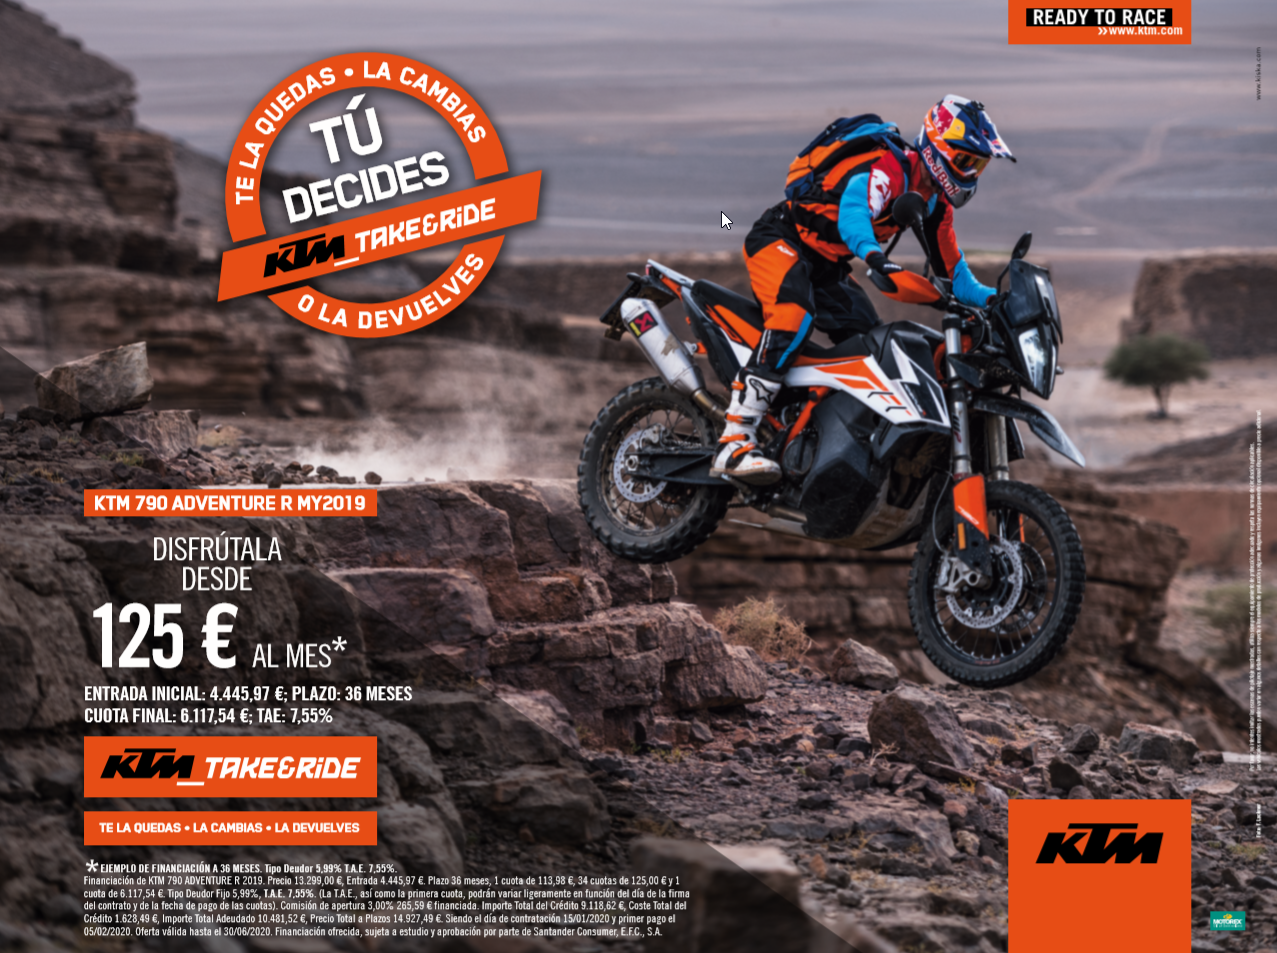 KTM Adventure 790 financiación TAKE&RIDE desde 125€ al mes